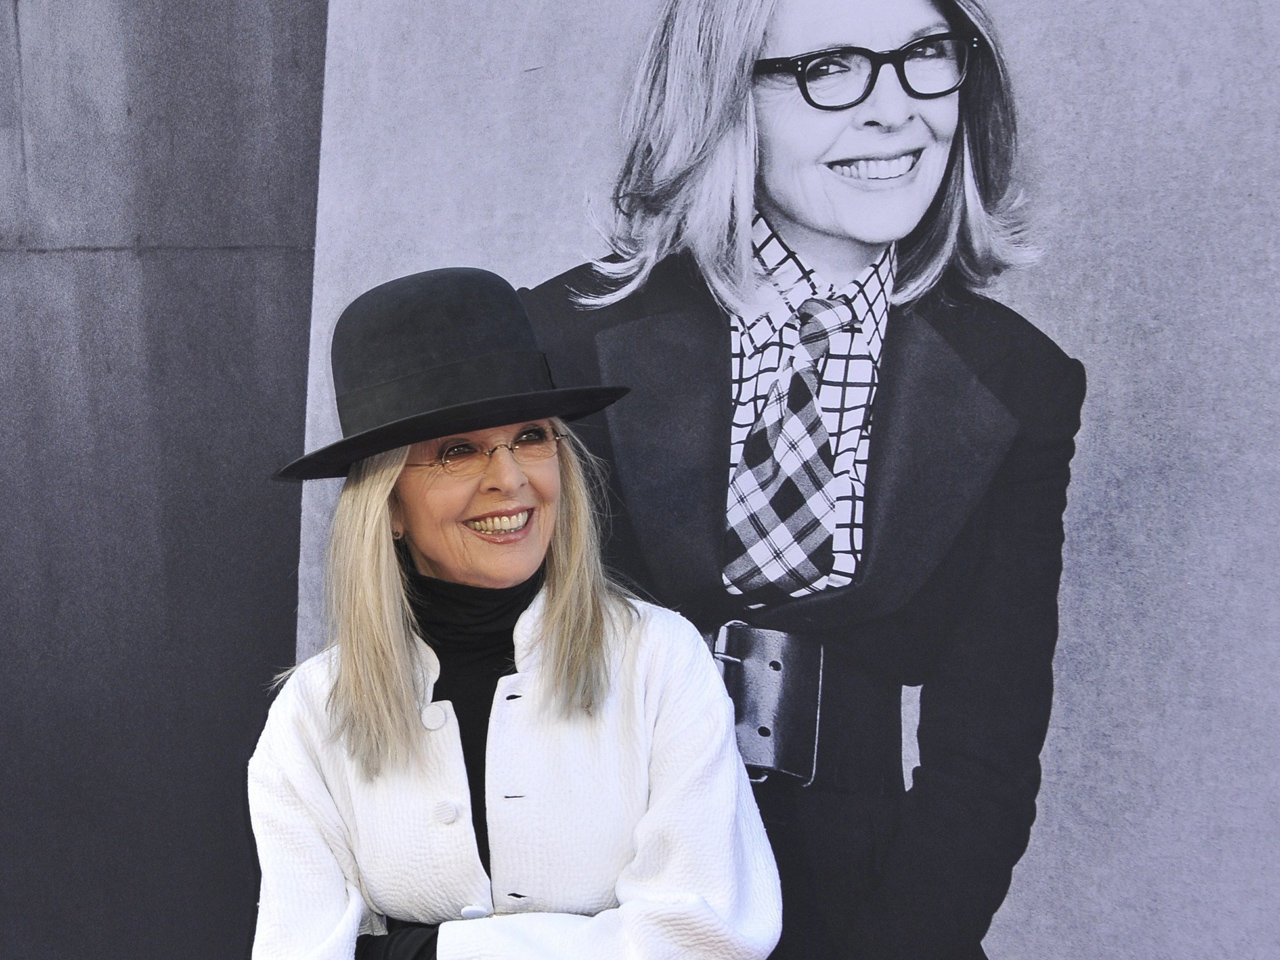 What's life without friends? Still fulfilling, says Diane Keaton